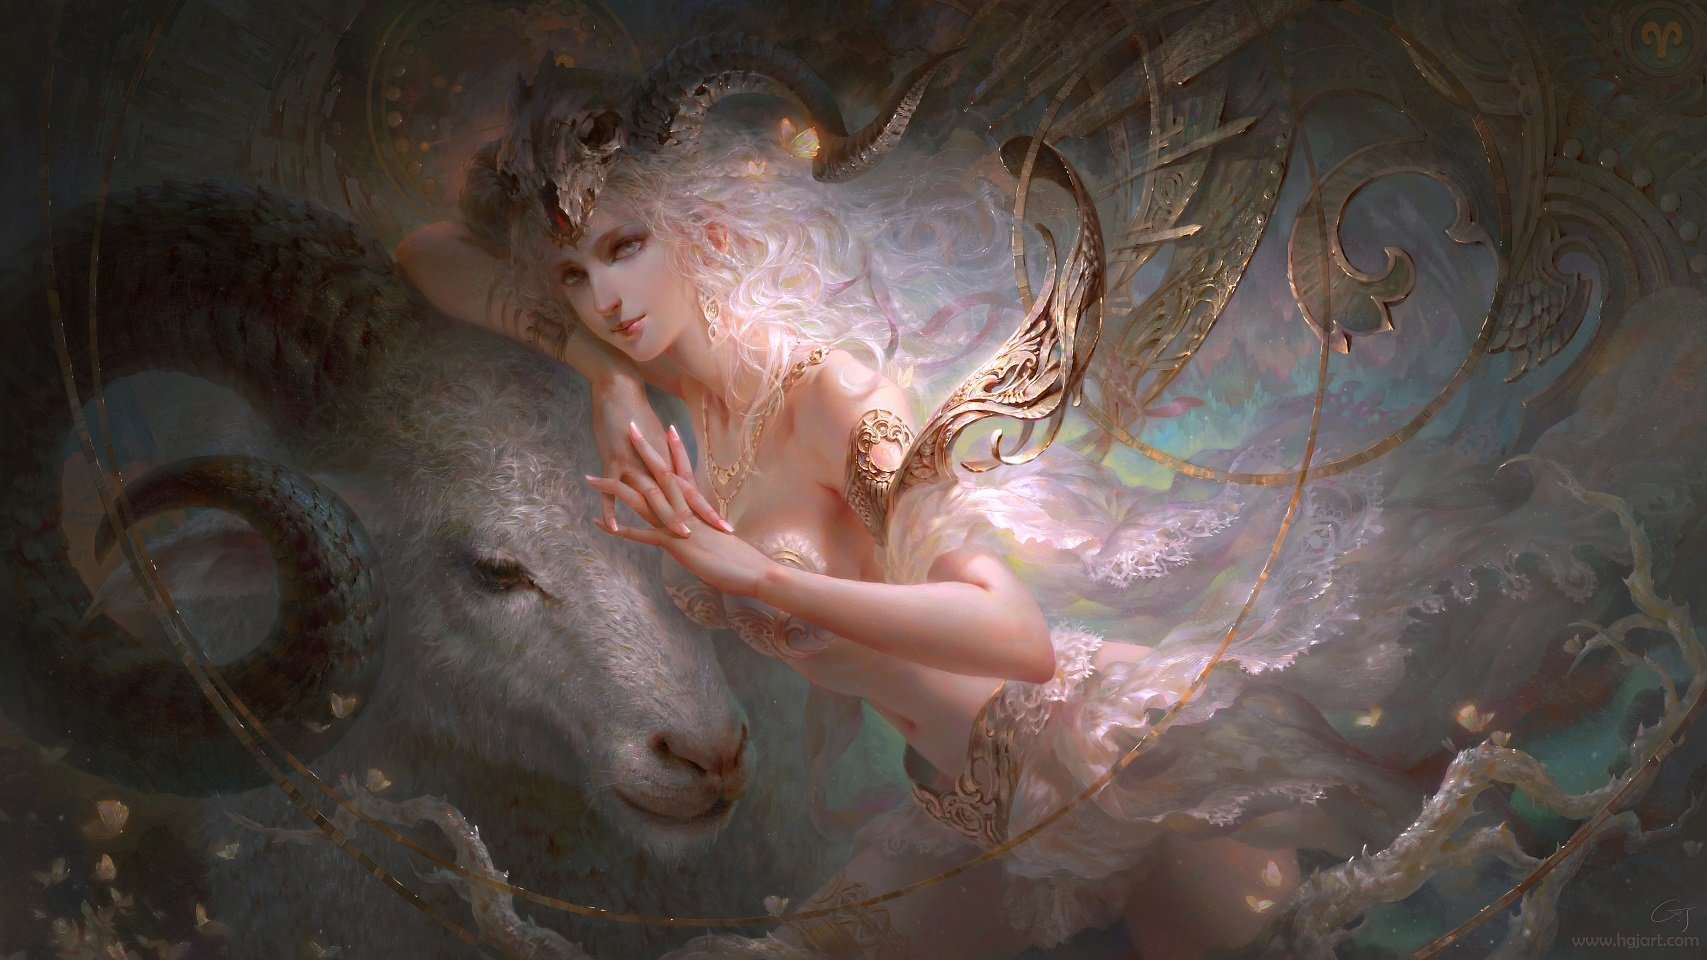 guangjian huang digital painting Aries